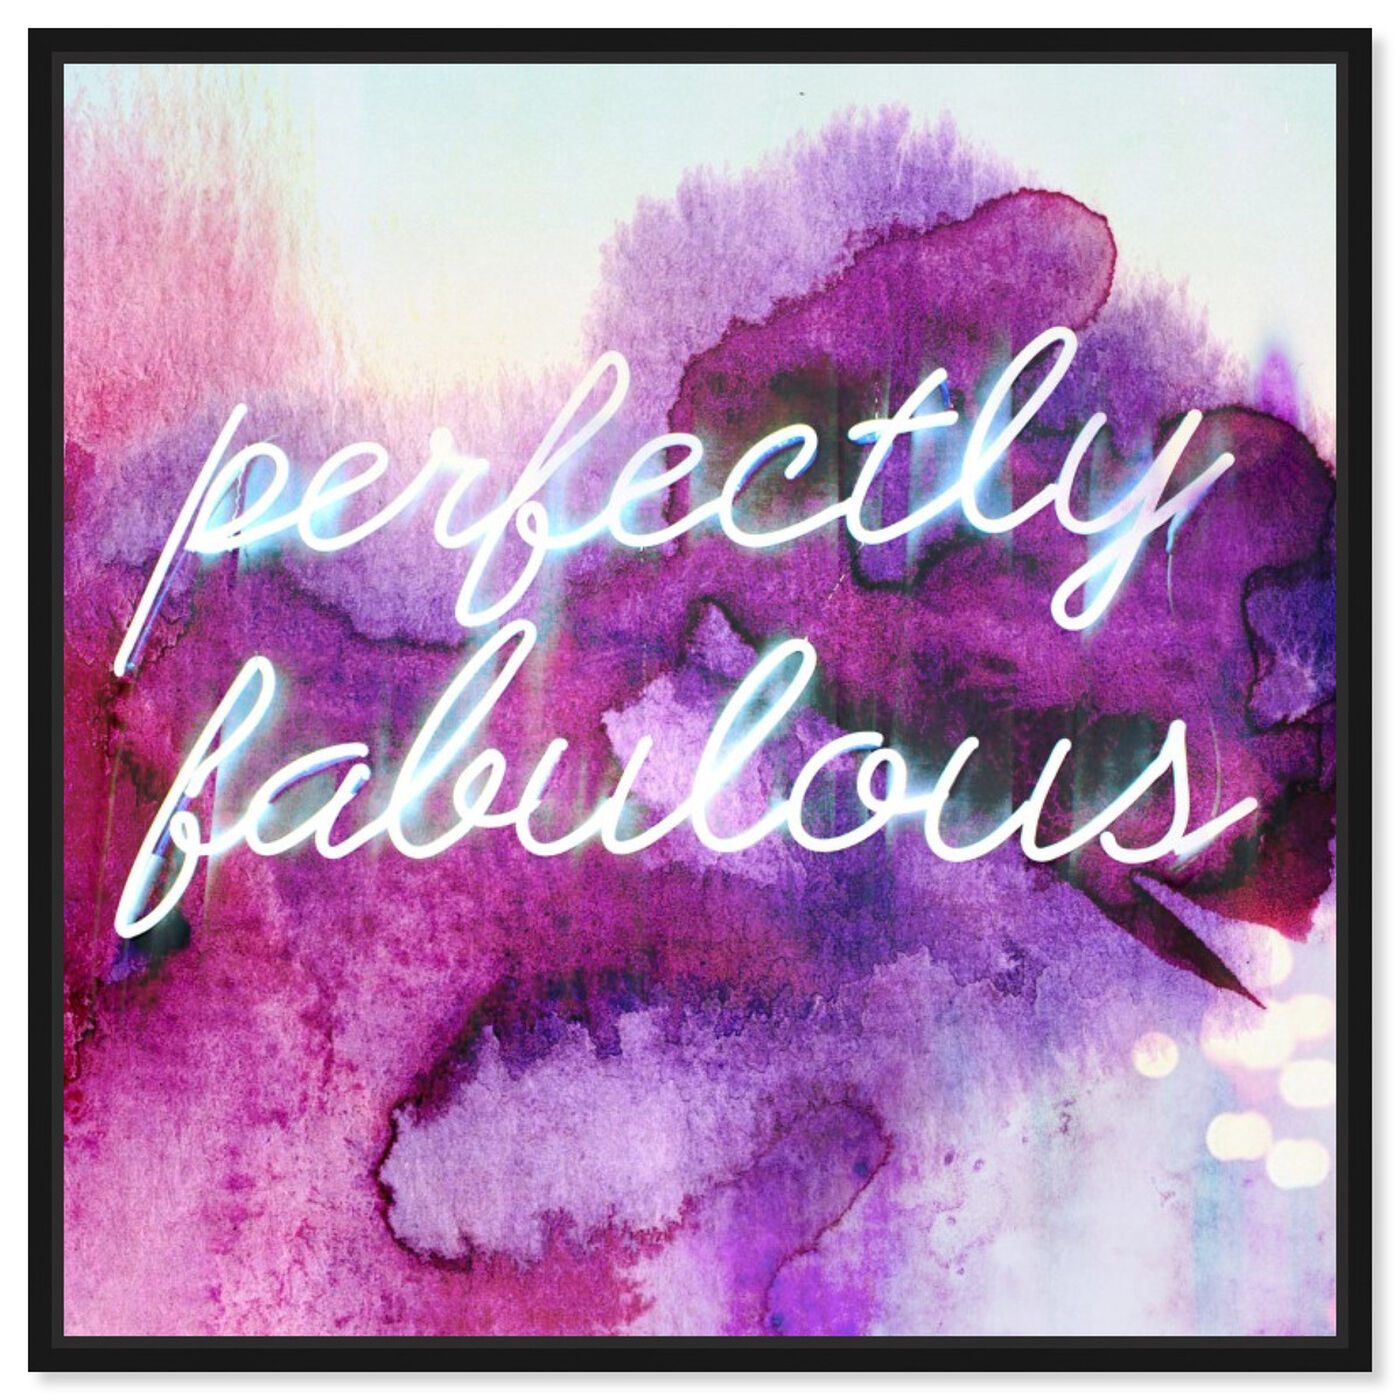 Front view of Perfectly Fabulous featuring typography and quotes and beauty quotes and sayings art.